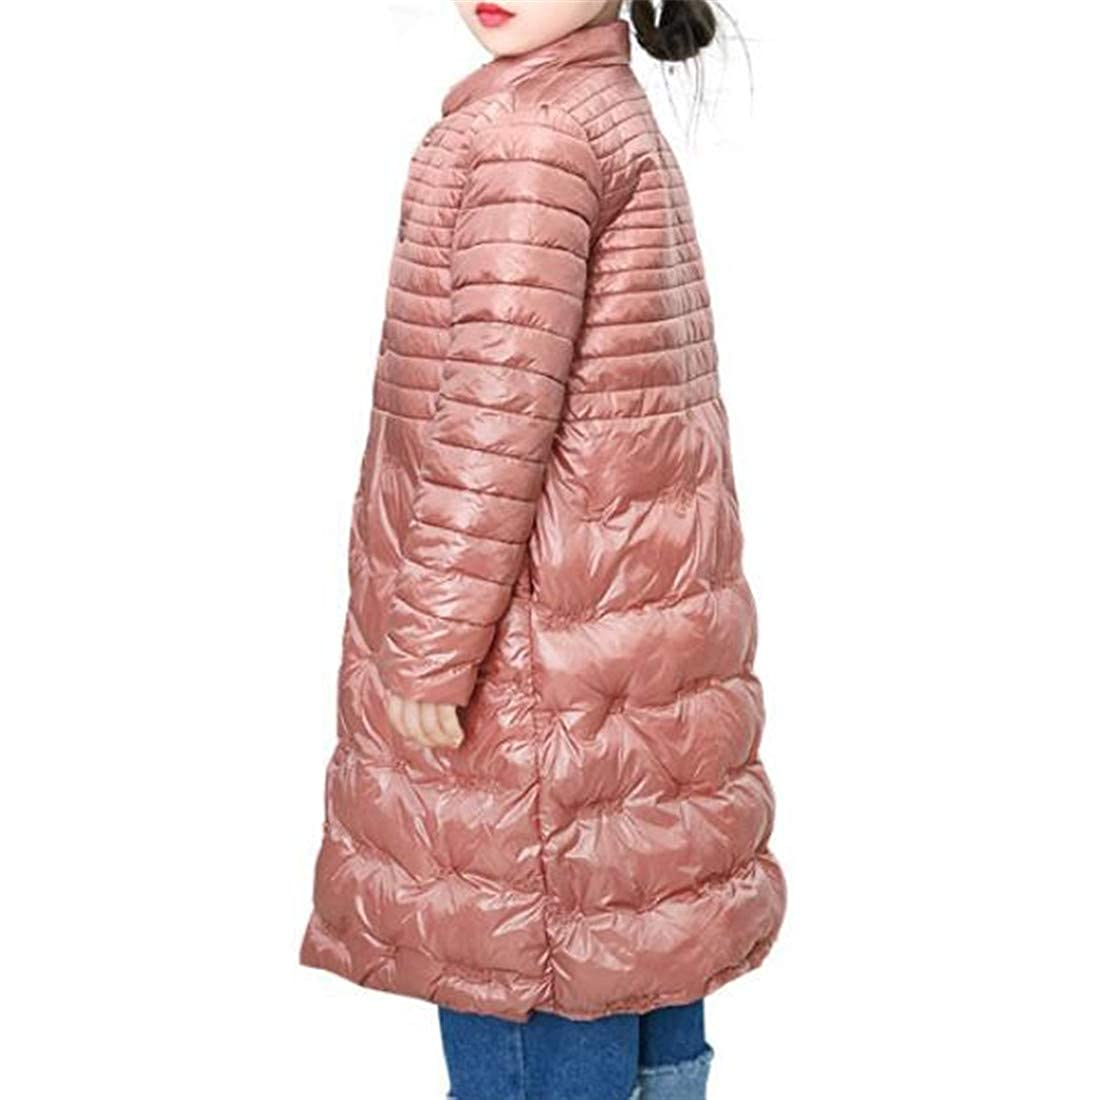 Wofupowga Big Girls Cute Cotton Padded Warm Puffer Snap Button Parkas Jacket